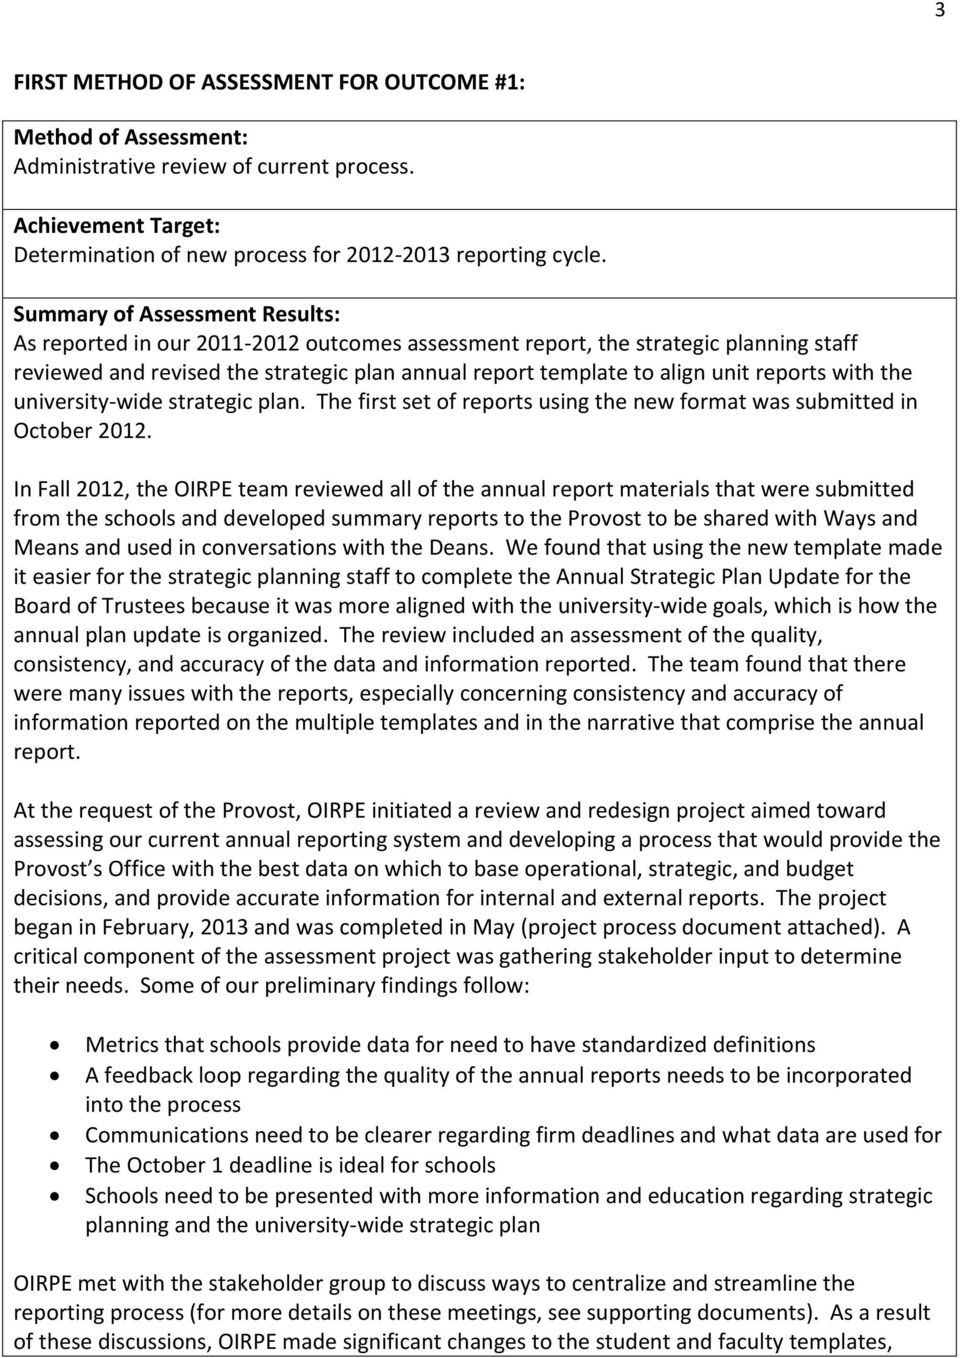 reports with the university wide strategic plan. The first set of reports using the new format was submitted in October 2012.